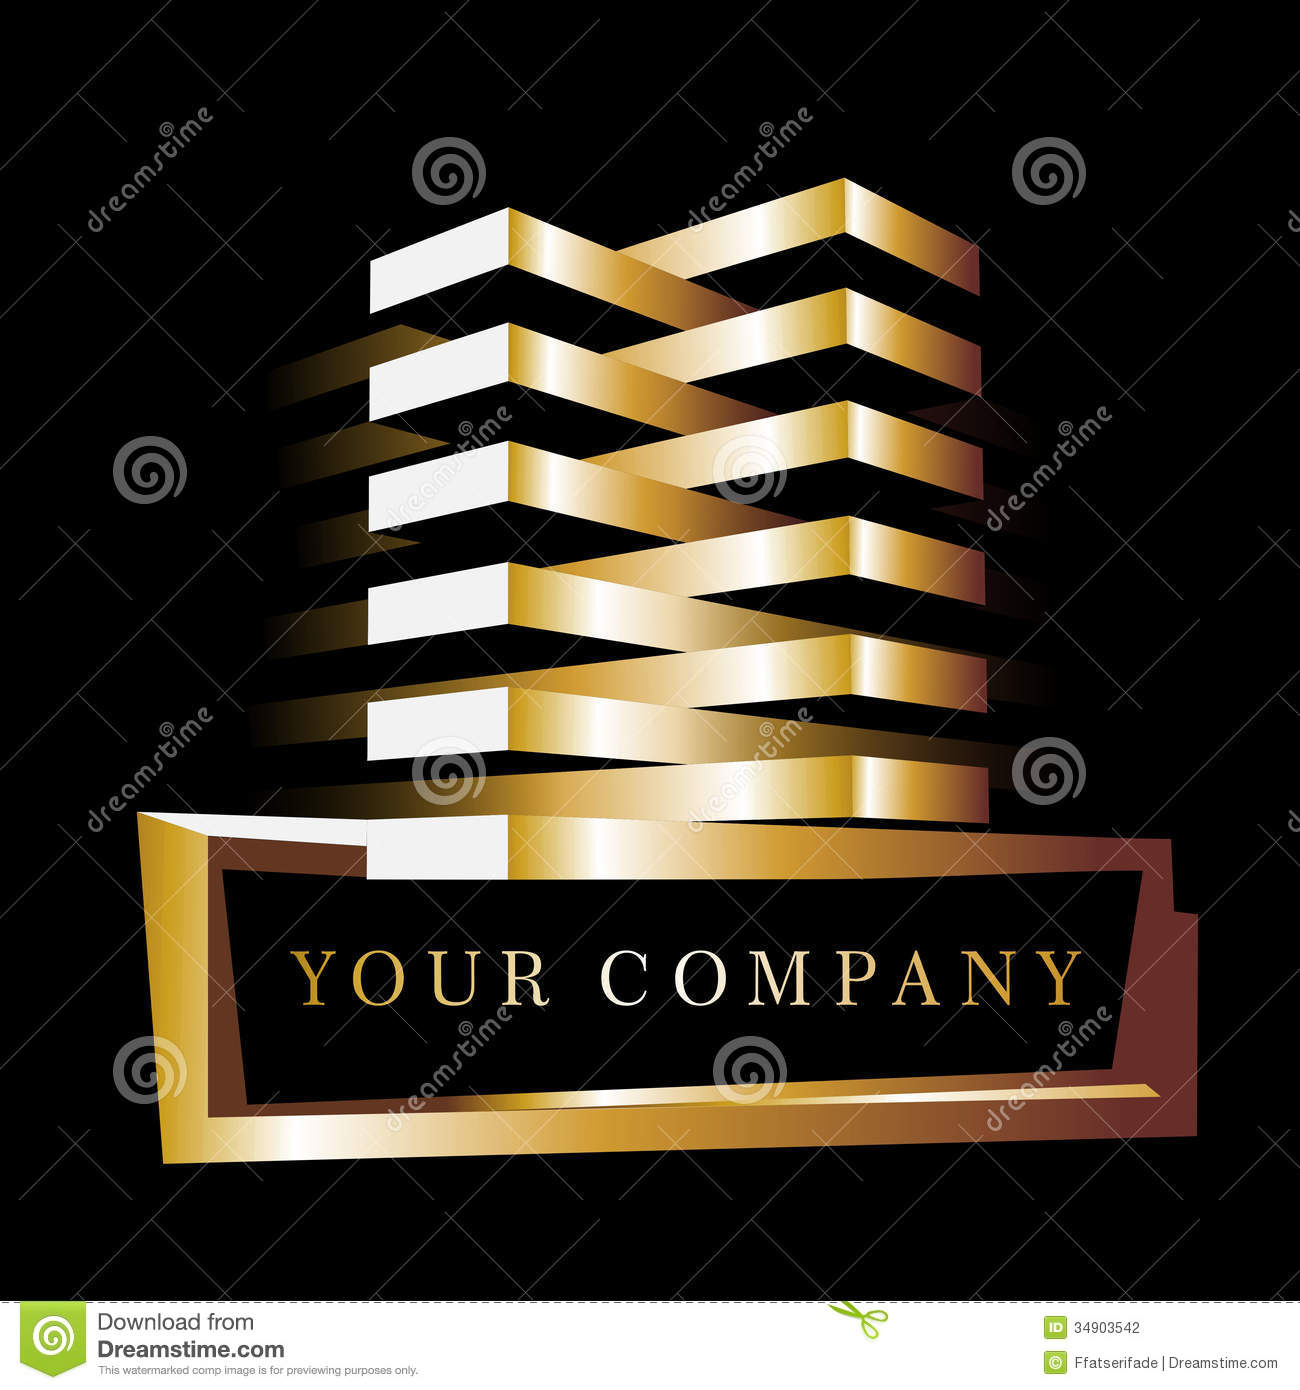 Real Estate Stock Photography Image 34903542